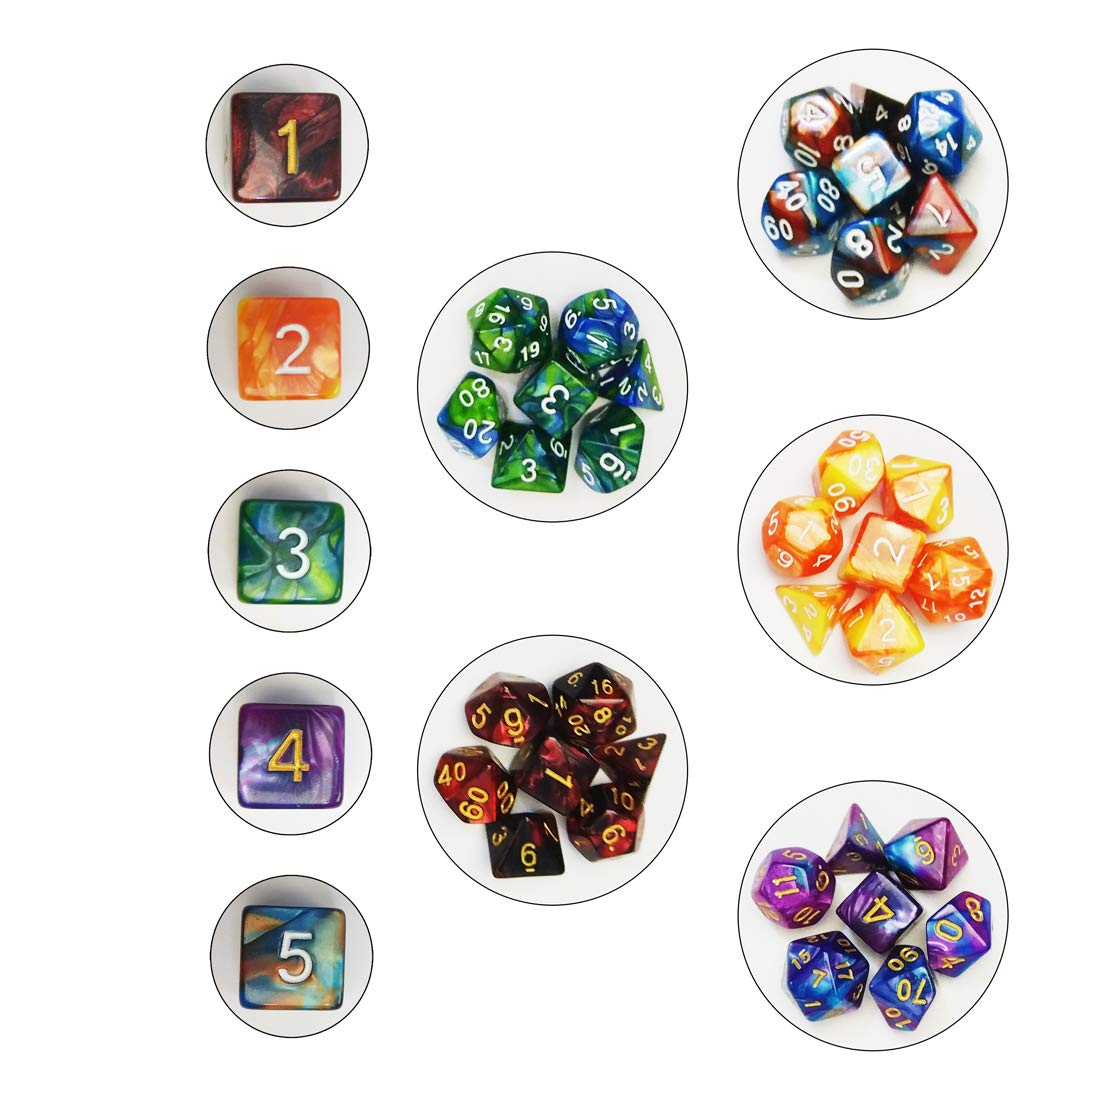 QMAY DND Dice Set, 140PCS Polyhedral Game Dice, 20 Color Double-Colors DND Dice Role Playing Dice for Dungeon and Dragons DND RPG MTG Table Games Dice D4 D8 D10 D12 D20 by QMAY (Image #3)